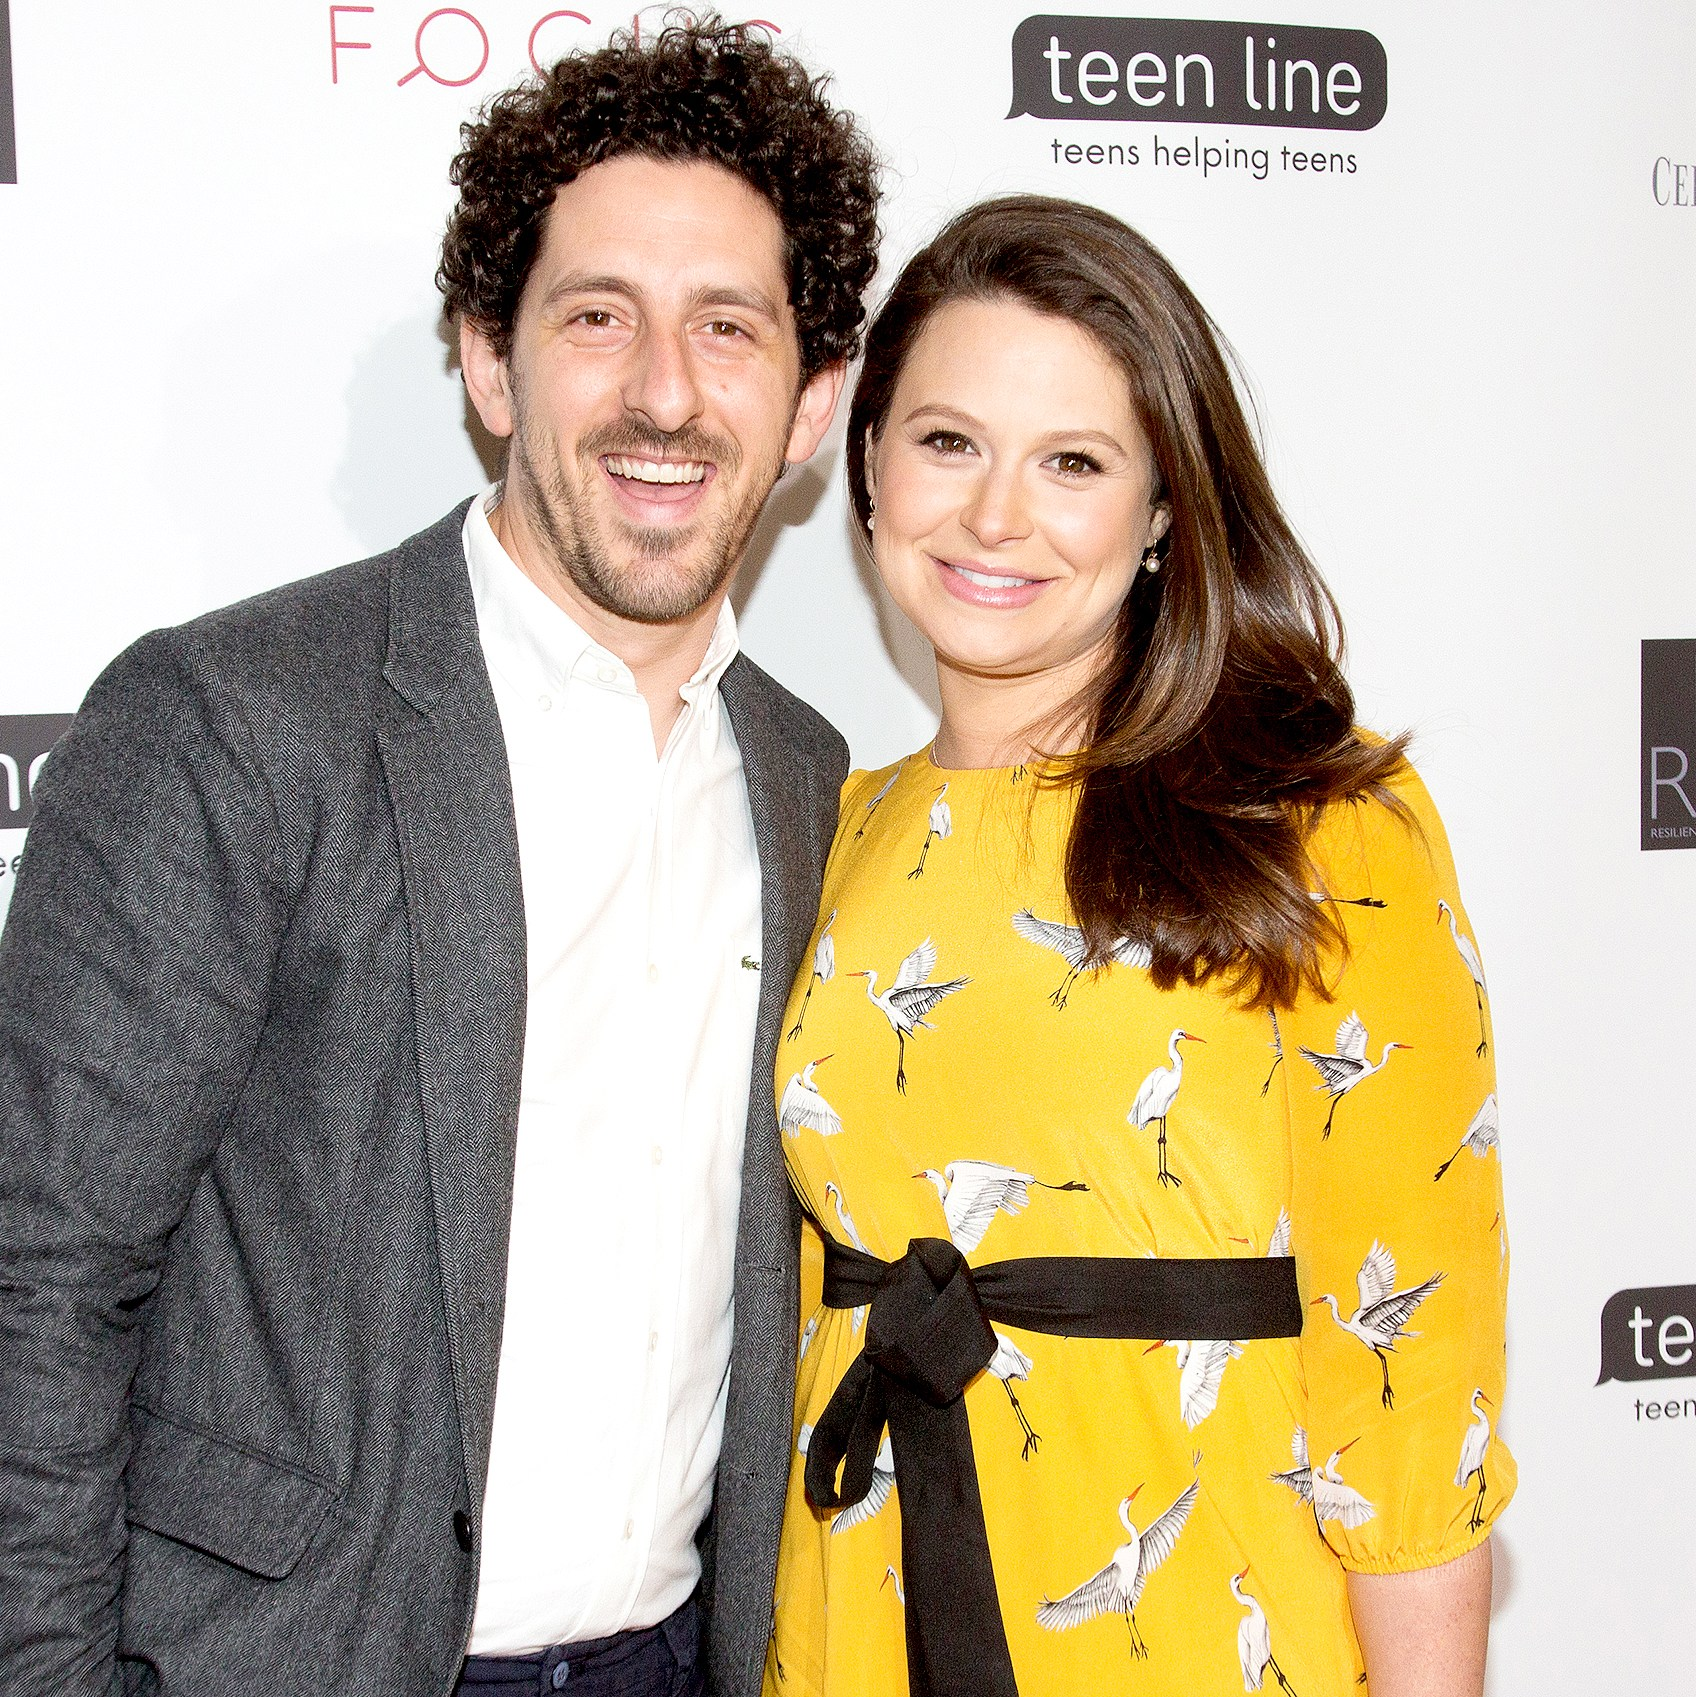 Adam Shapiro and Katie Lowes arrive for Teen Line's Food For Thought Luncheon - The Power of Empathy at The Beverly Hilton Hotel on May 25, 2017 in Beverly Hills, California.